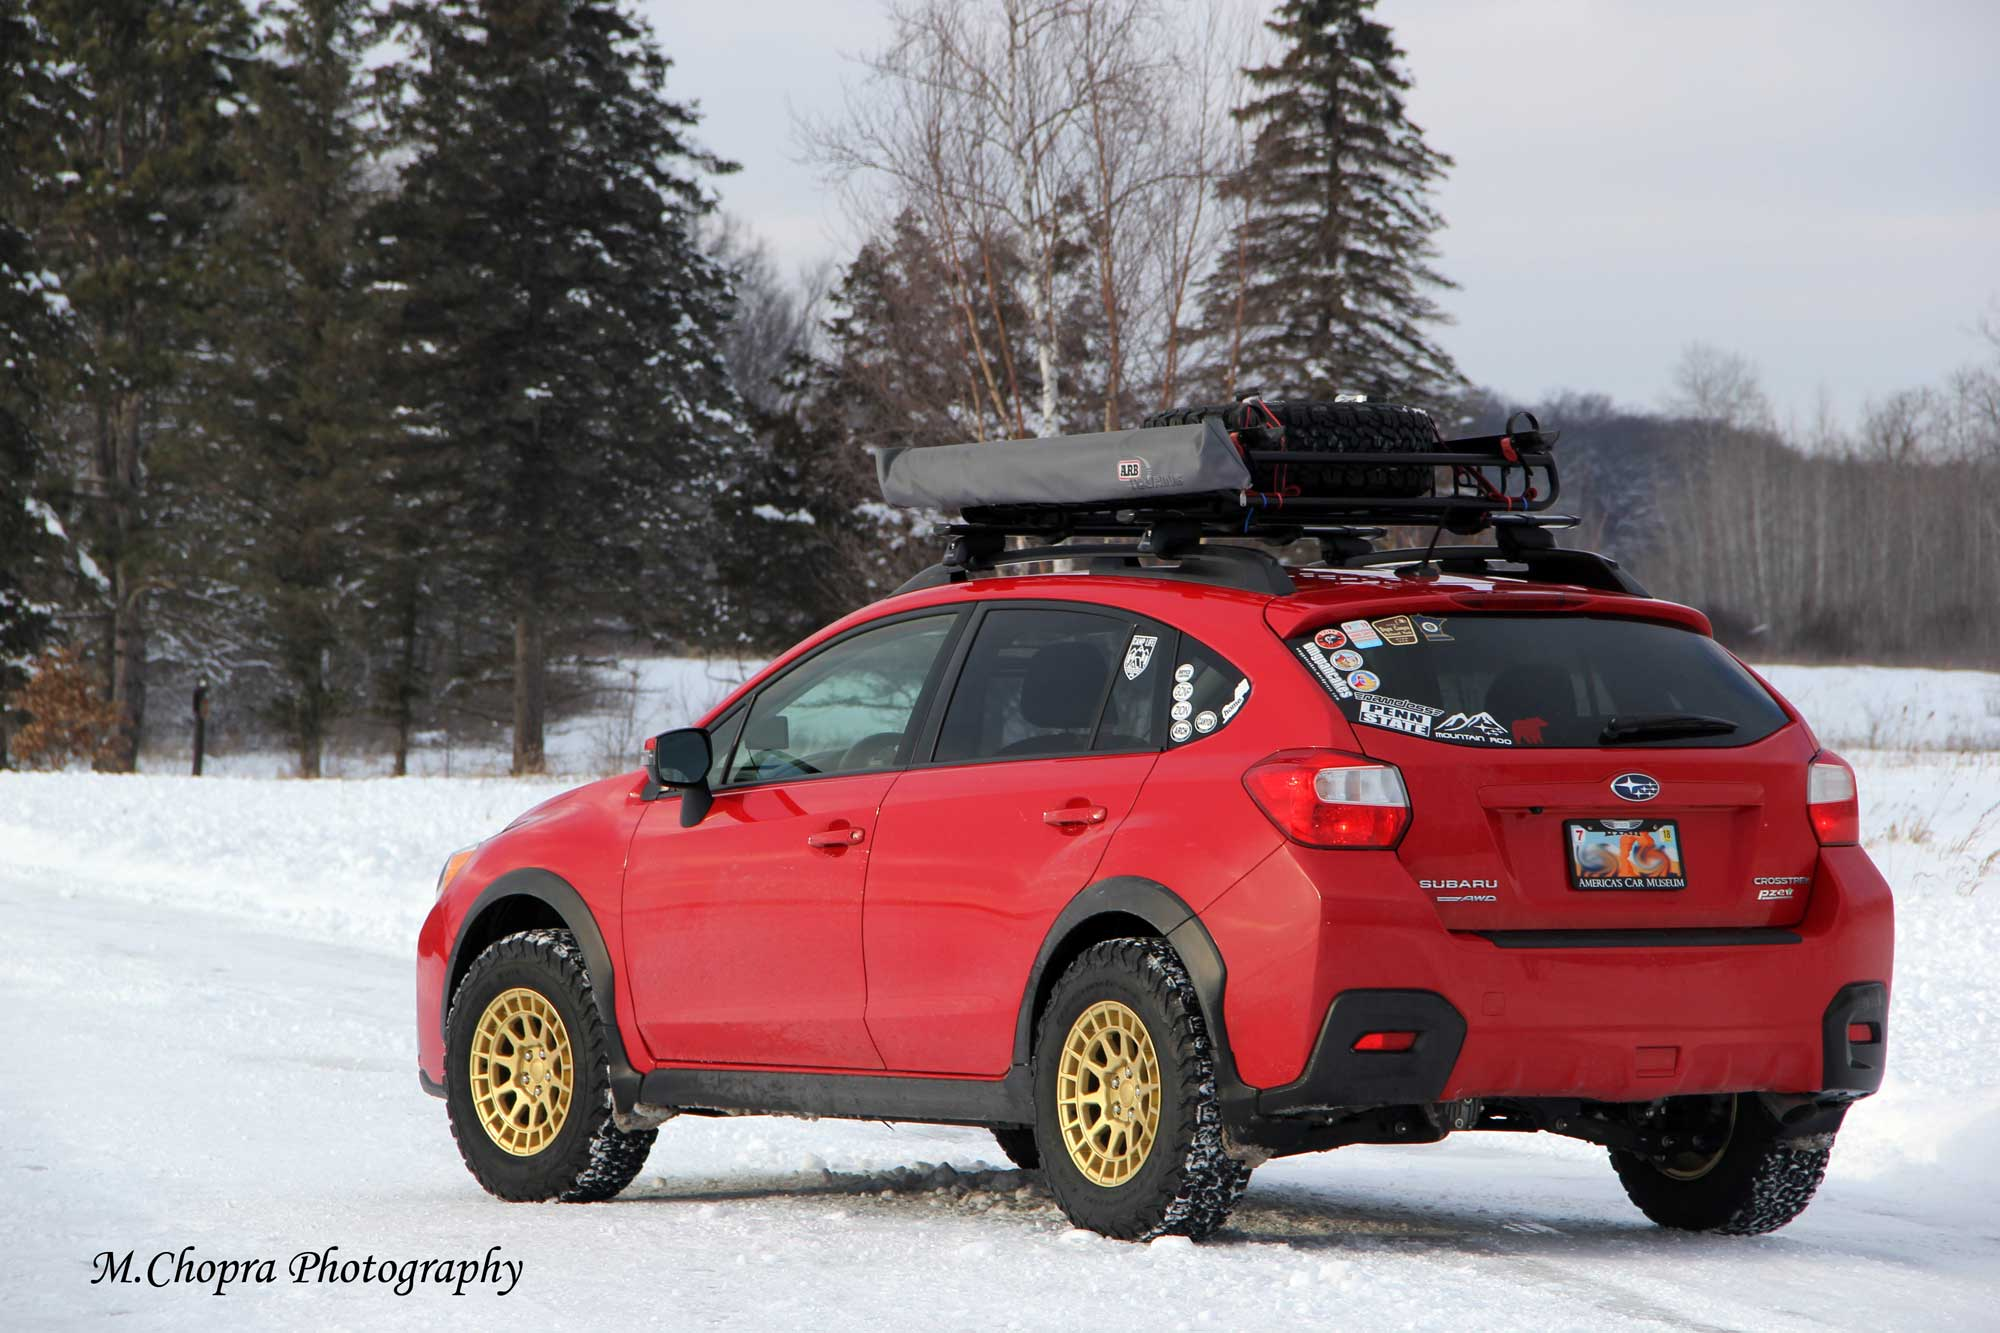 Subaru Crosstrek Off Road >> Crankshaft Chronicles: Marlon's Subaru Crosstrek